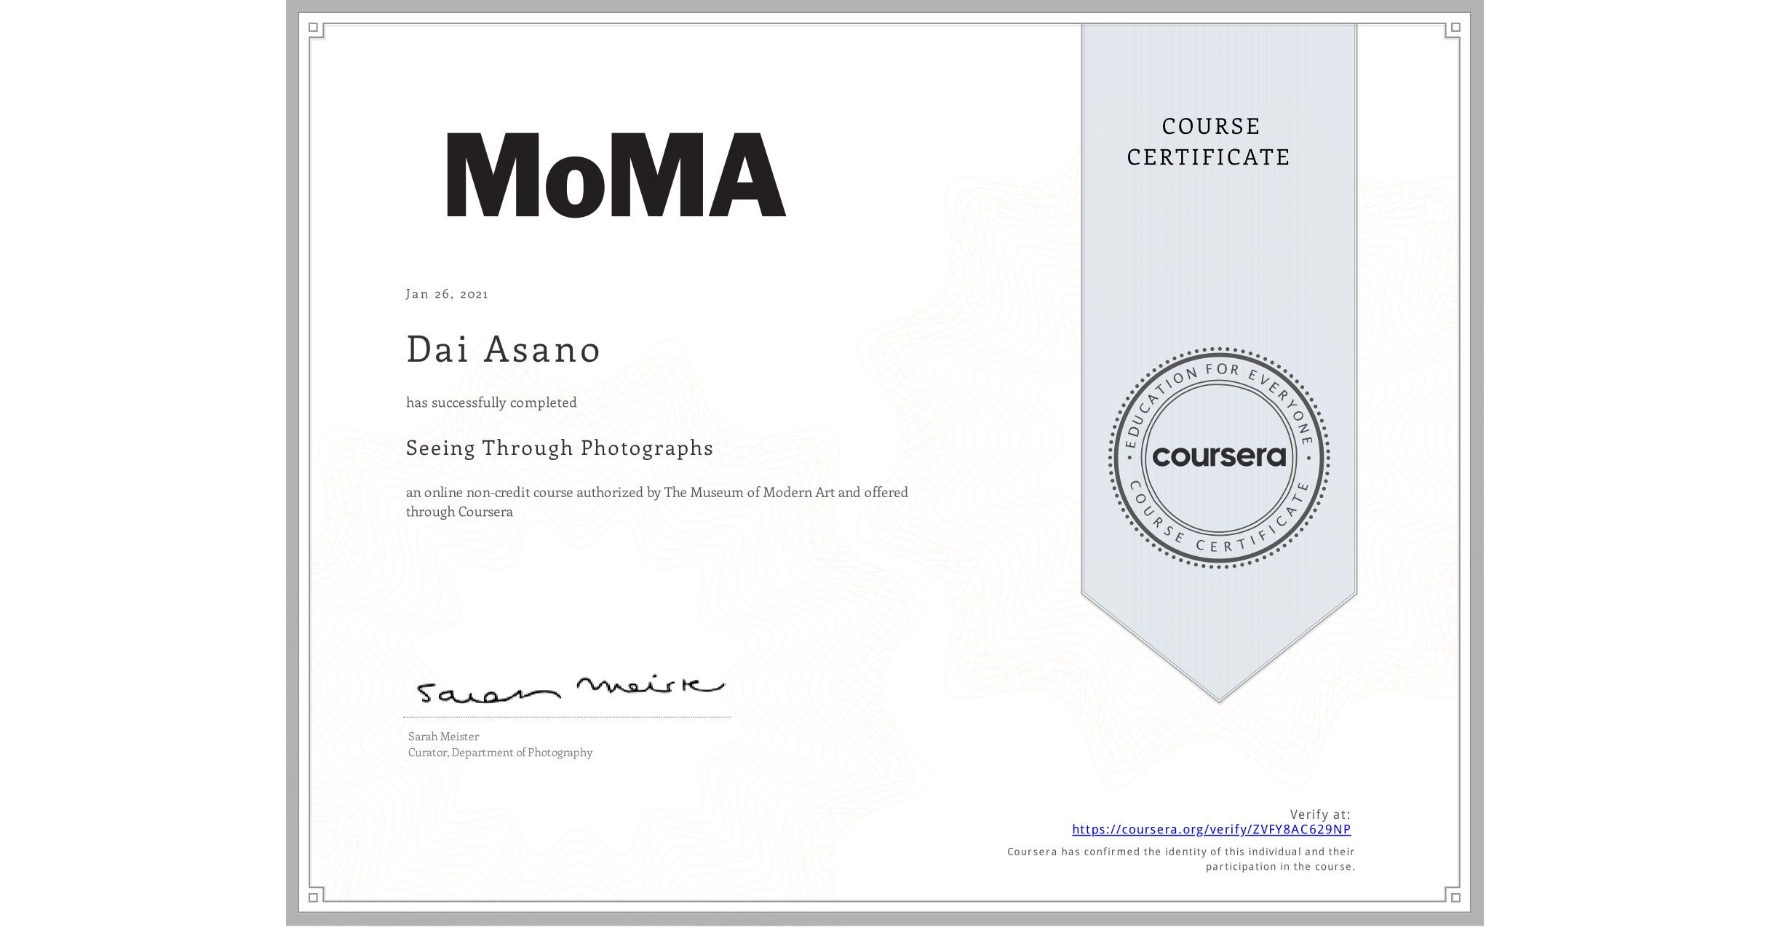 View certificate for Dai Asano, Seeing Through Photographs, an online non-credit course authorized by The Museum of Modern Art and offered through Coursera